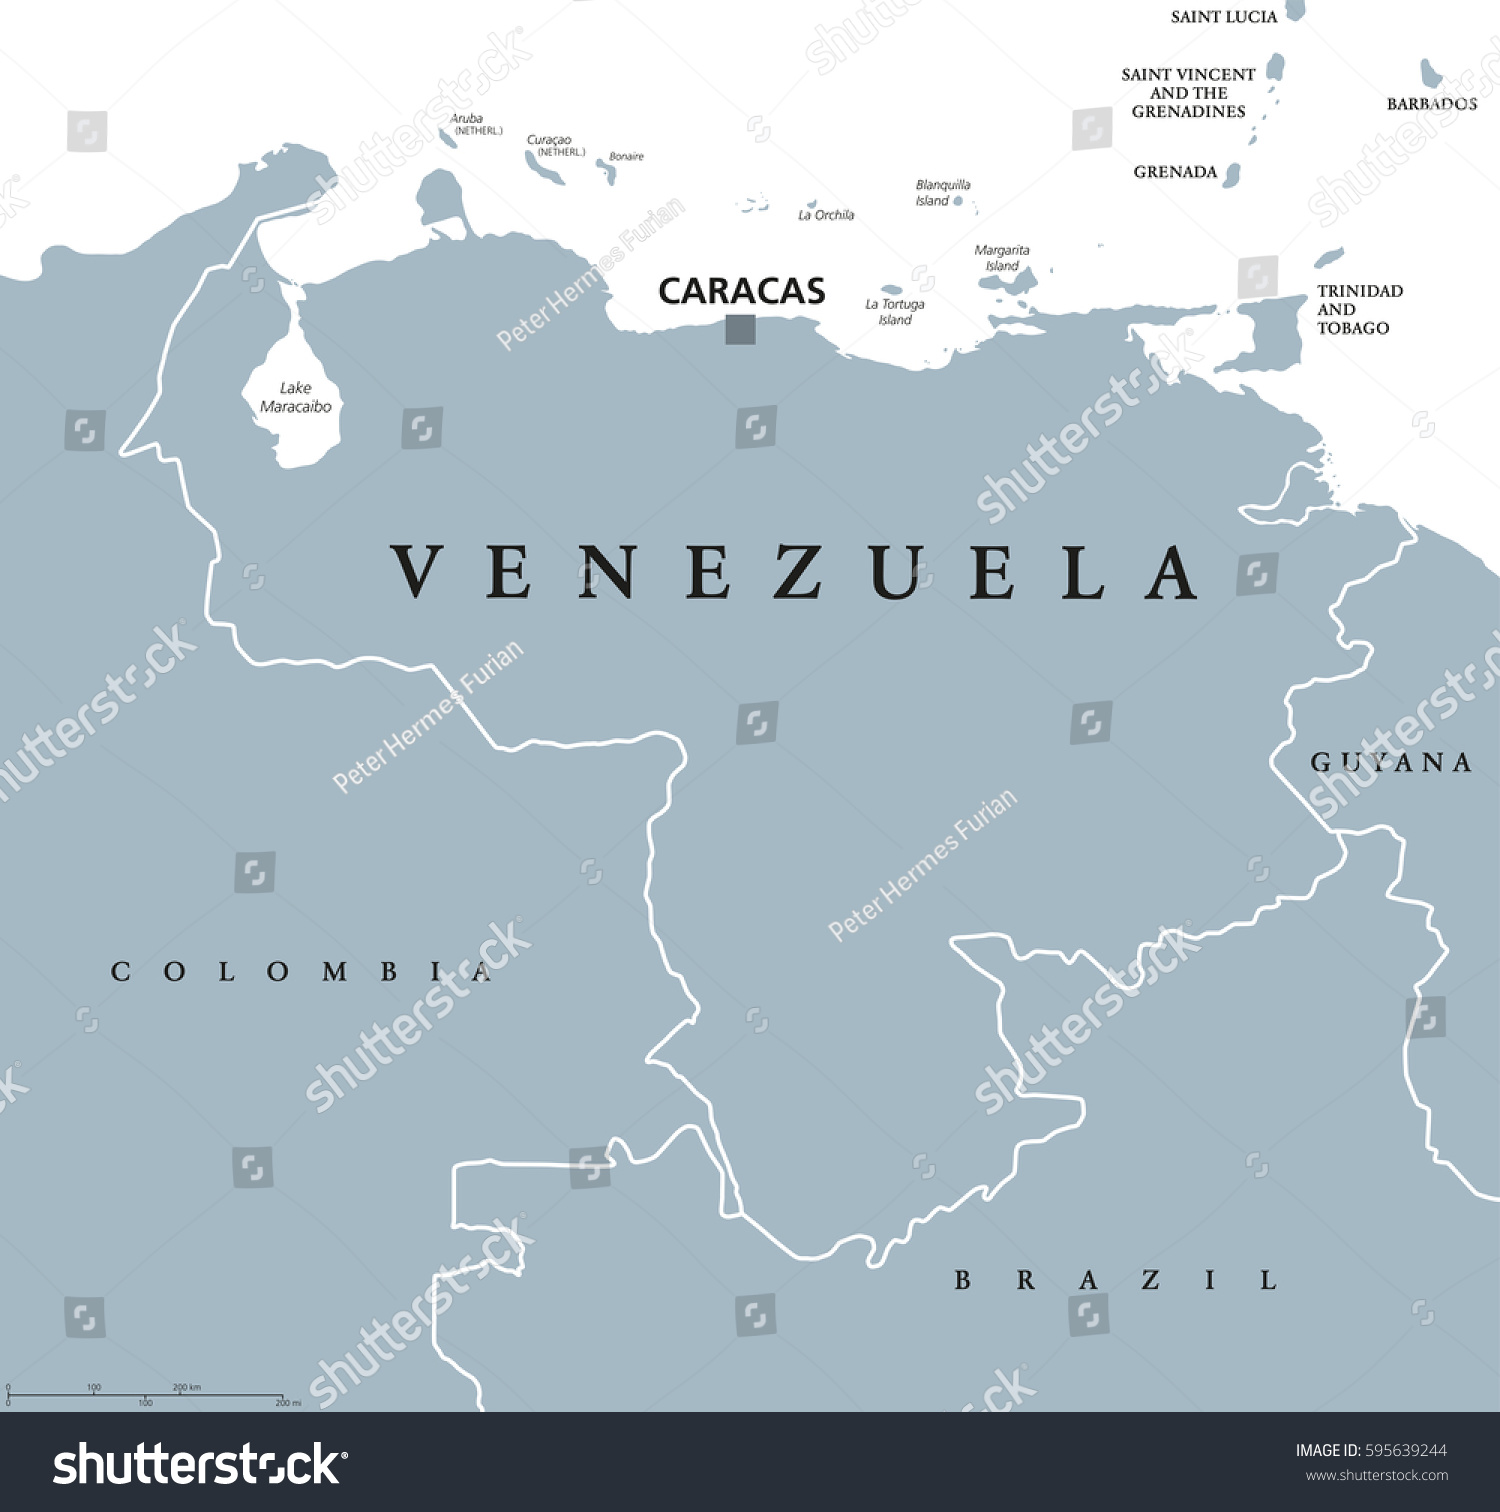 Venezuela Political Map Capital Caracas National Stock Vector - Caracas on world map